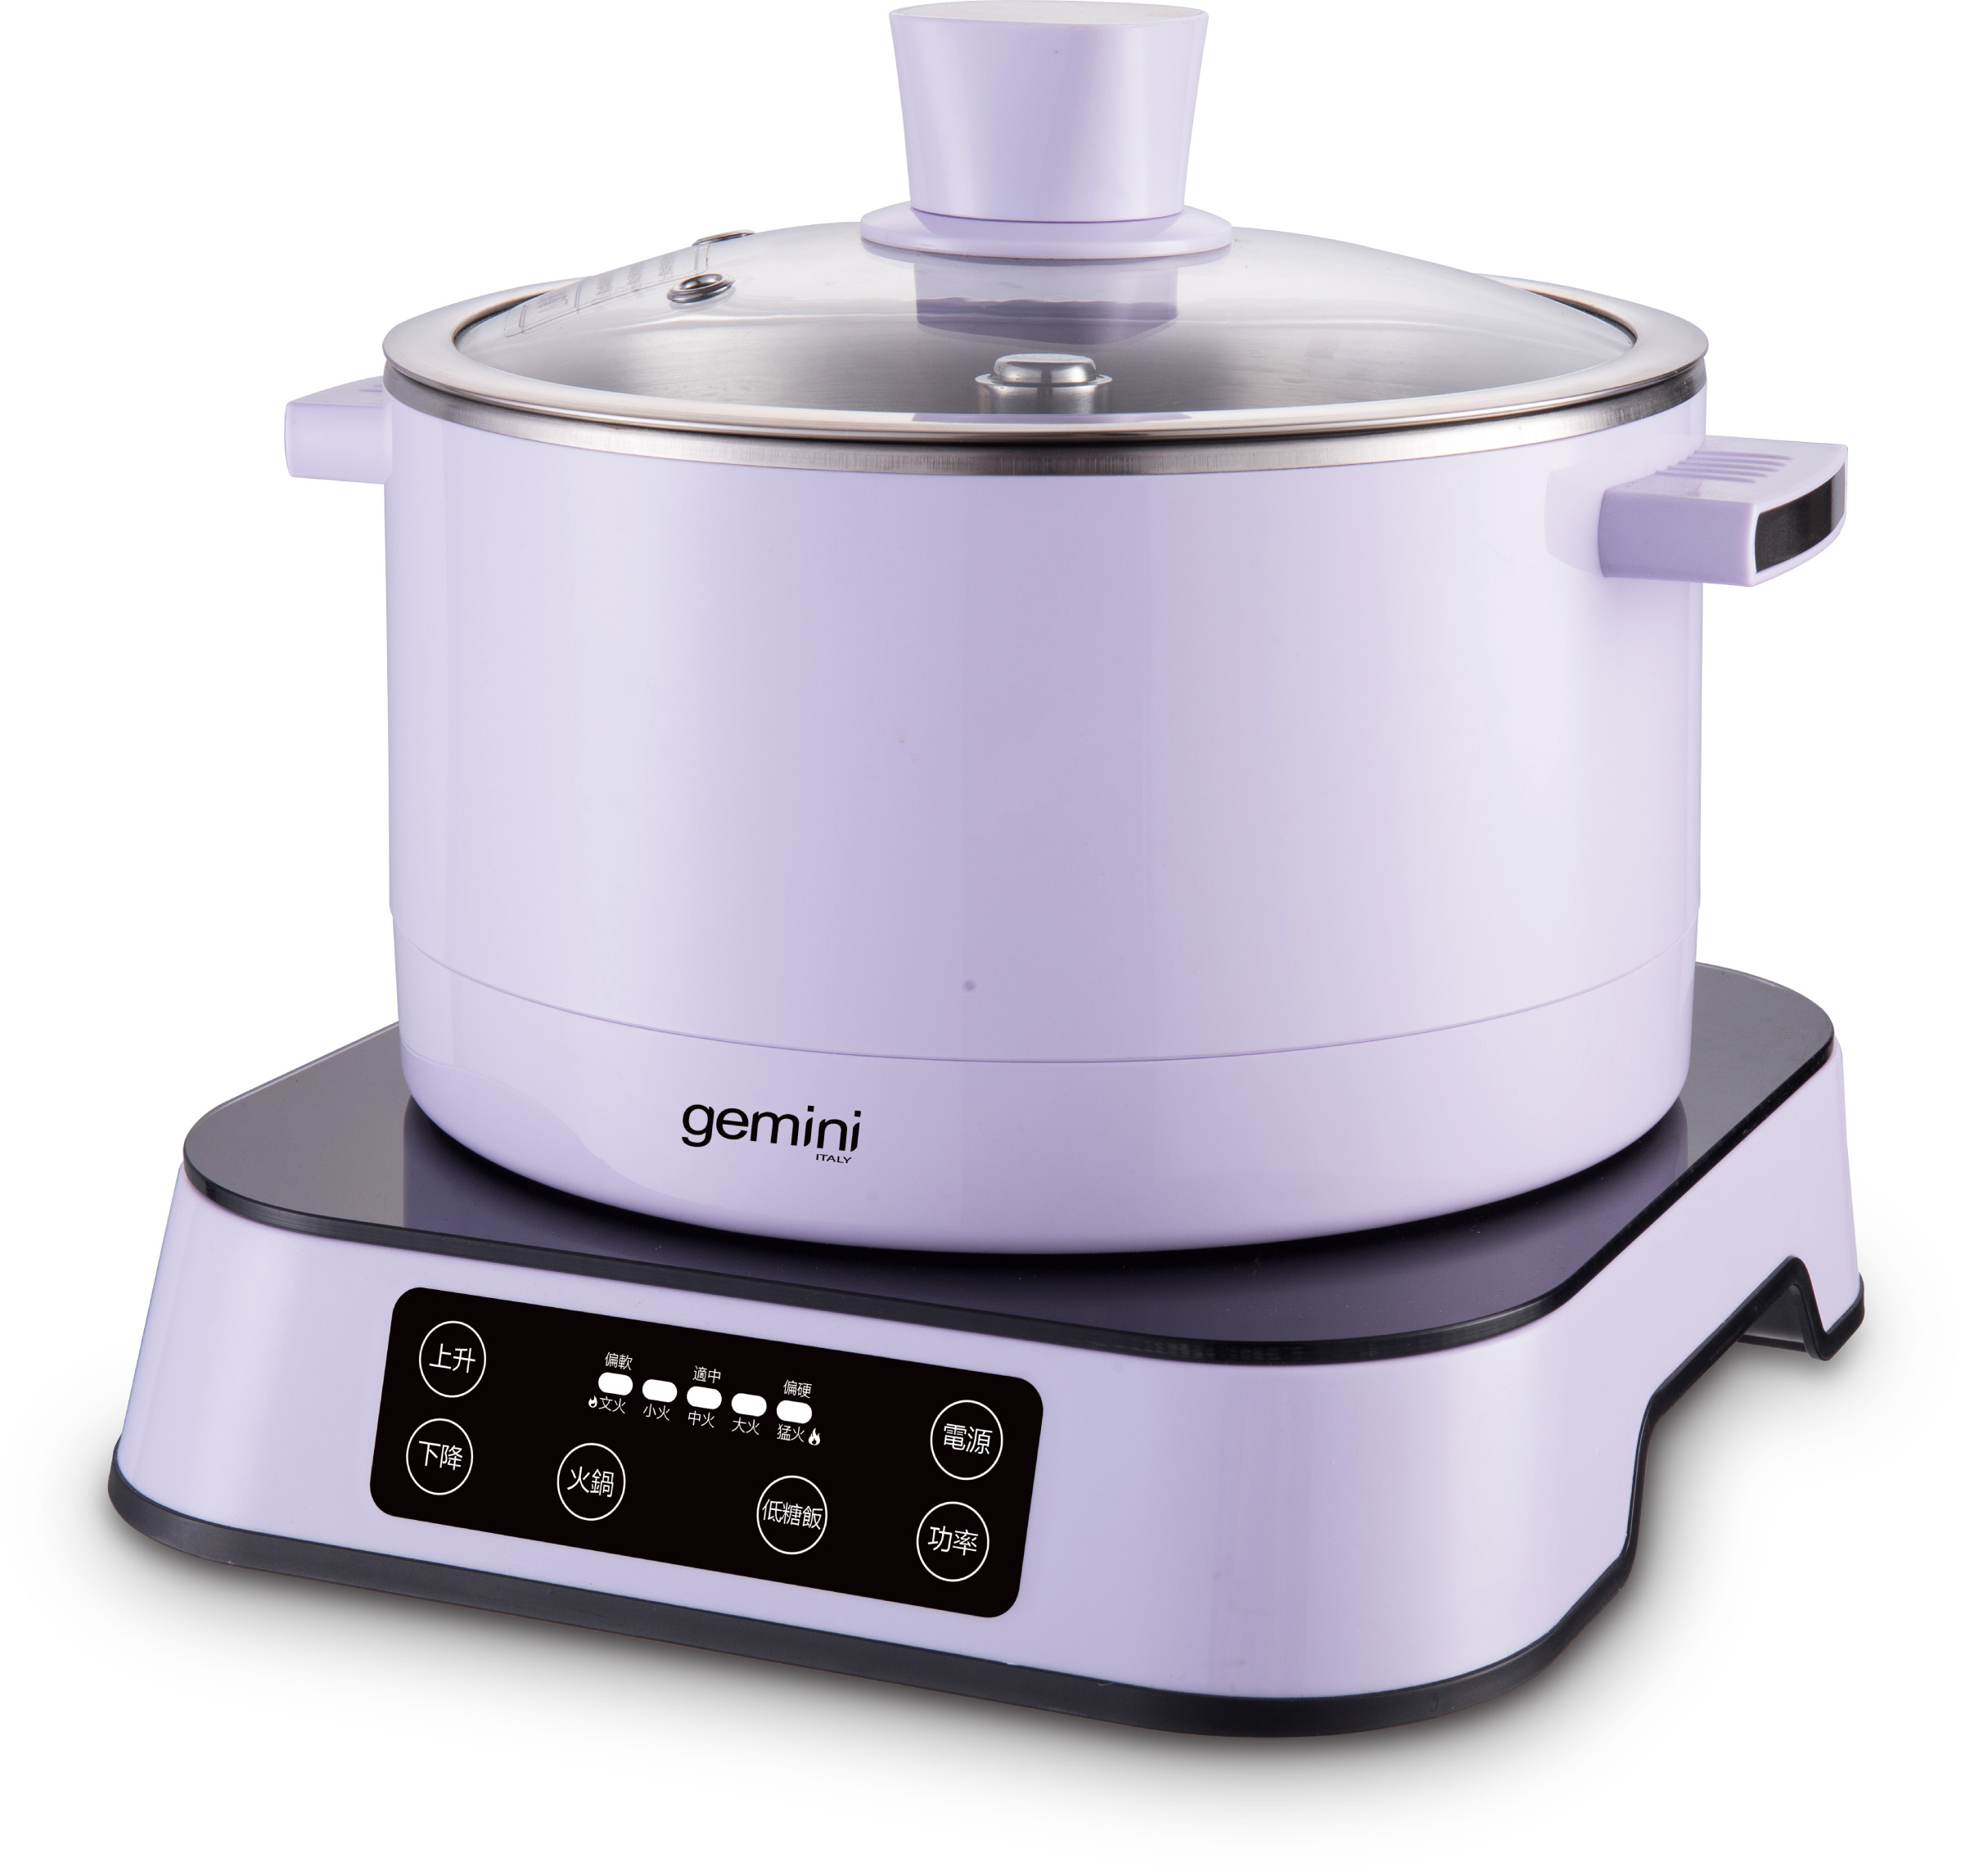 Gemini 2.5L Smart Auto-lifting Multi-functional Hot Pot Cooker - GUM15V